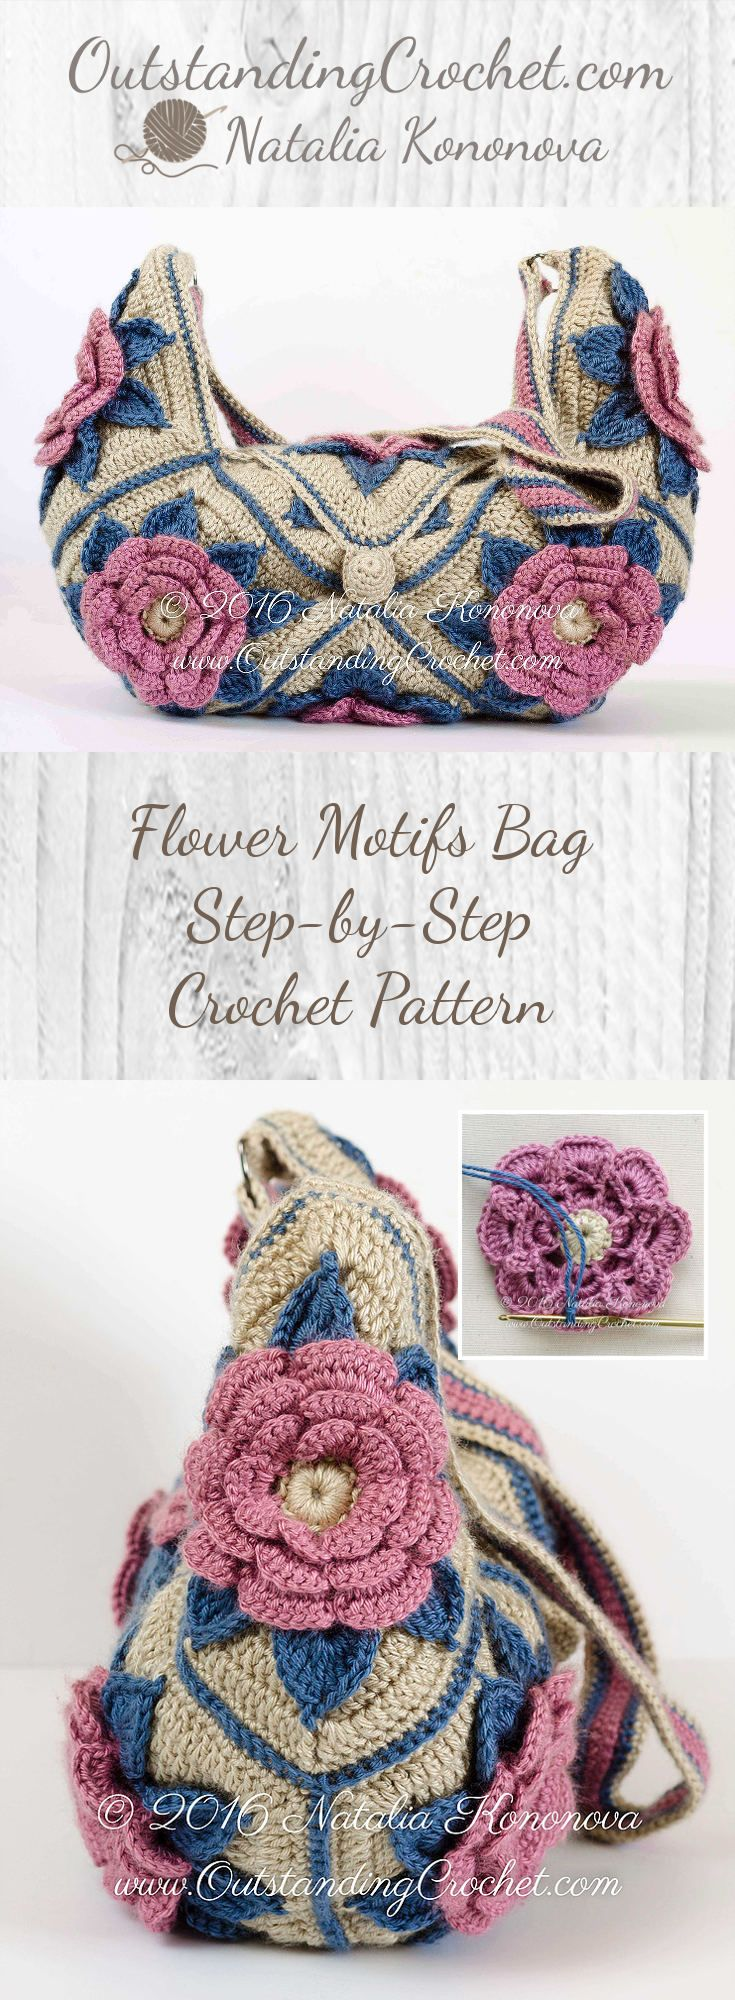 5053 best Cathartic Crochet images on Pinterest | Knits, Knitted ...